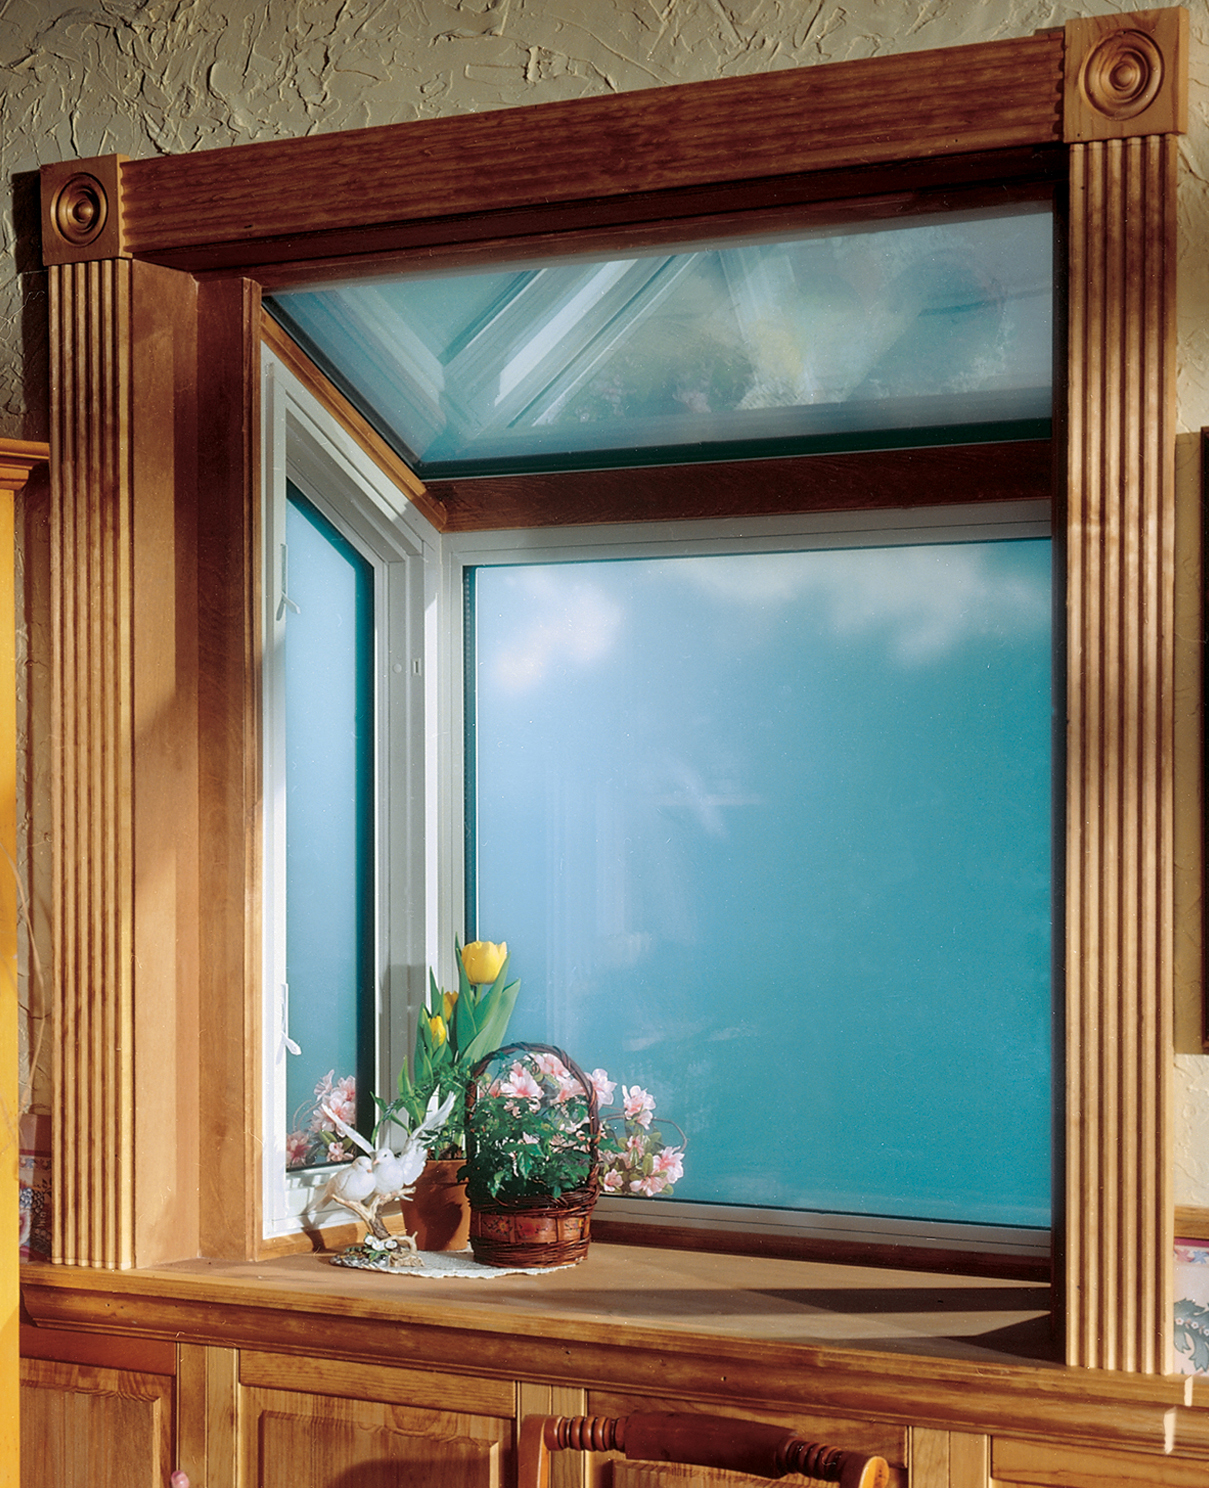 New anderson double hung 400 series windows brand new for Anderson vinyl windows